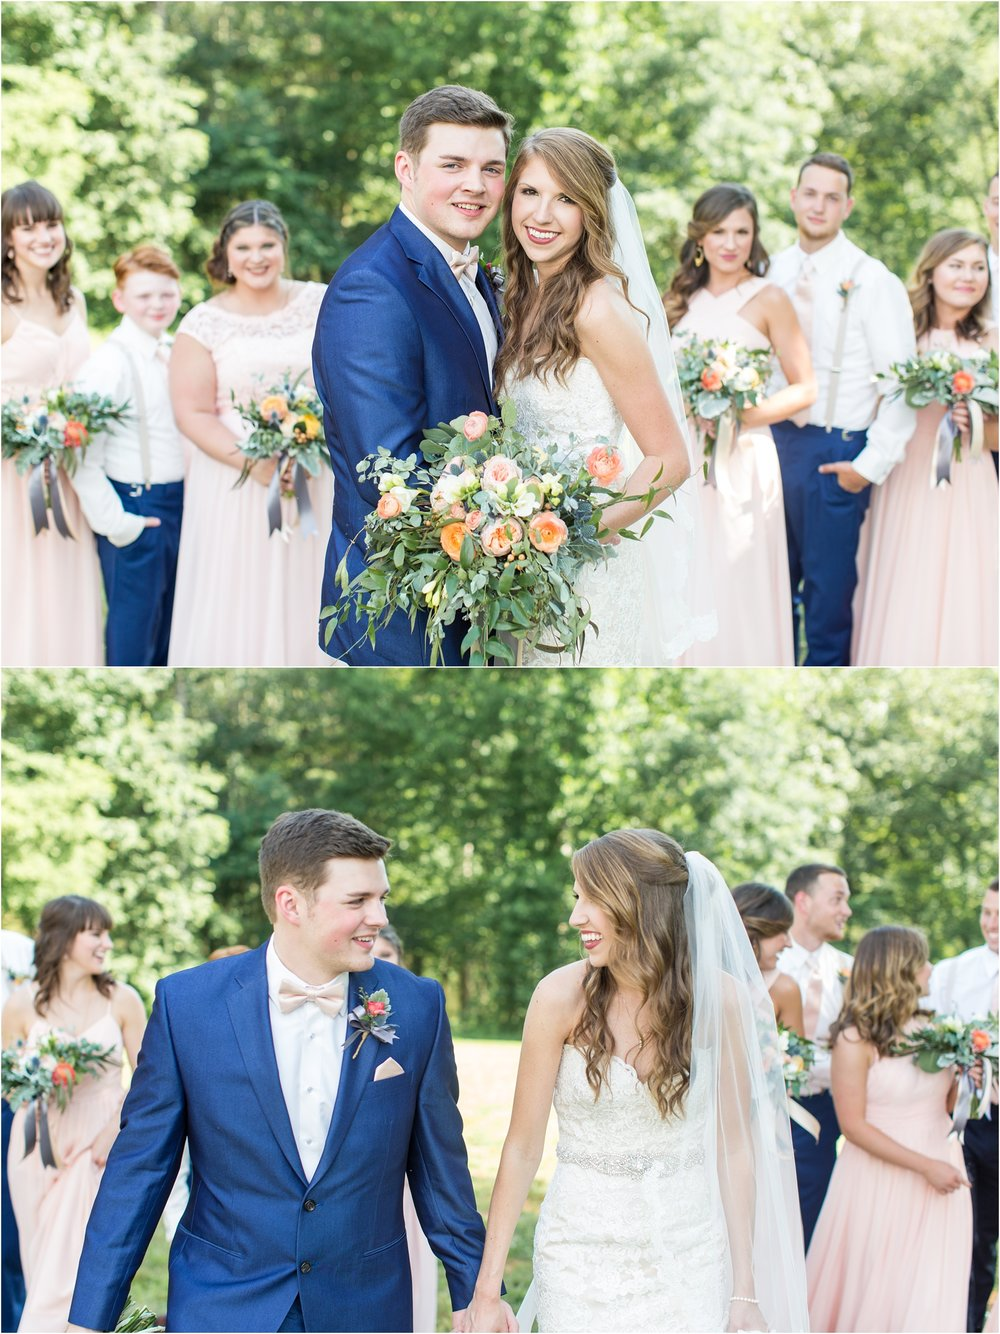 Savannah Eve Photography- Phillips Wedding- Blog-34.jpg